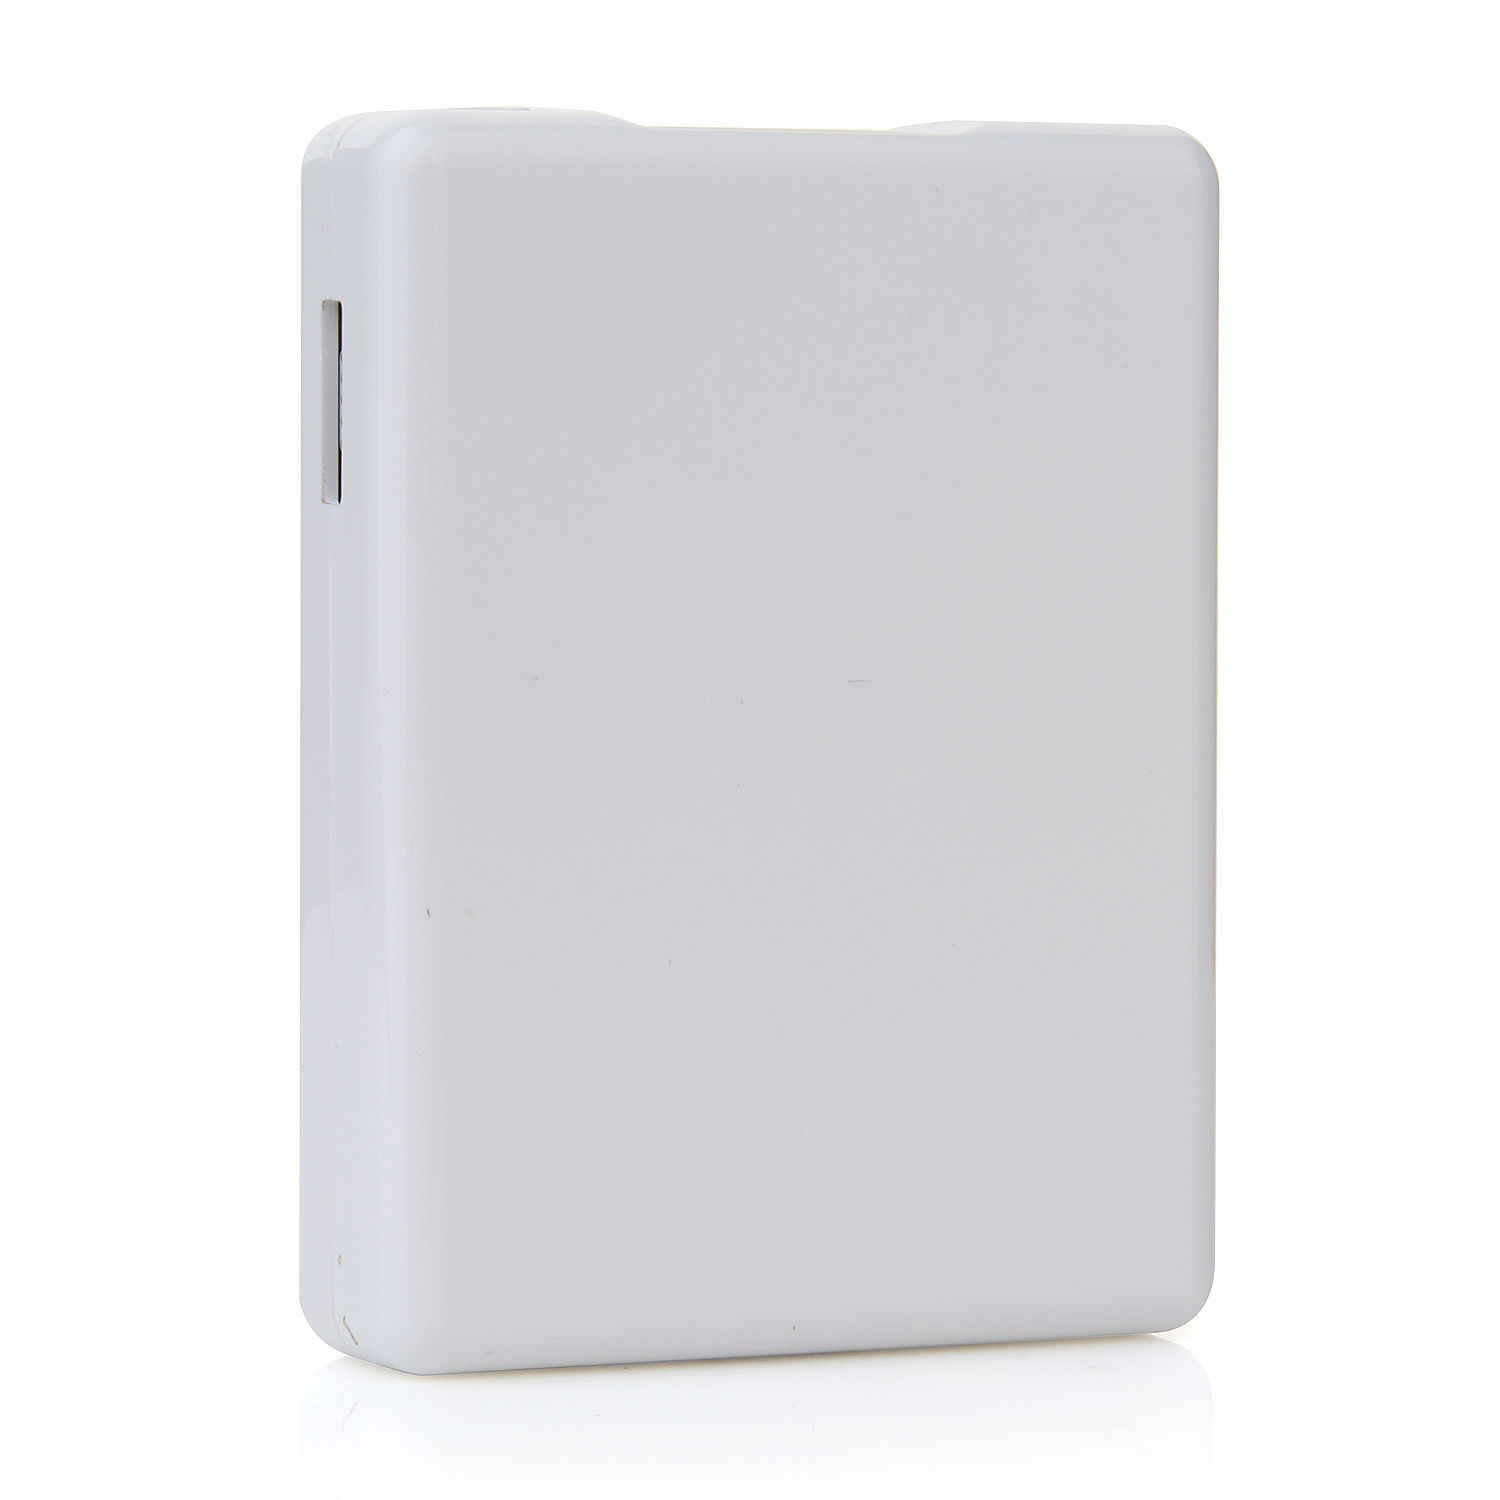 PAN OCEAN APP-326 Power Bank 7500mAh Fast Charge Power Pack 5V 2.1A